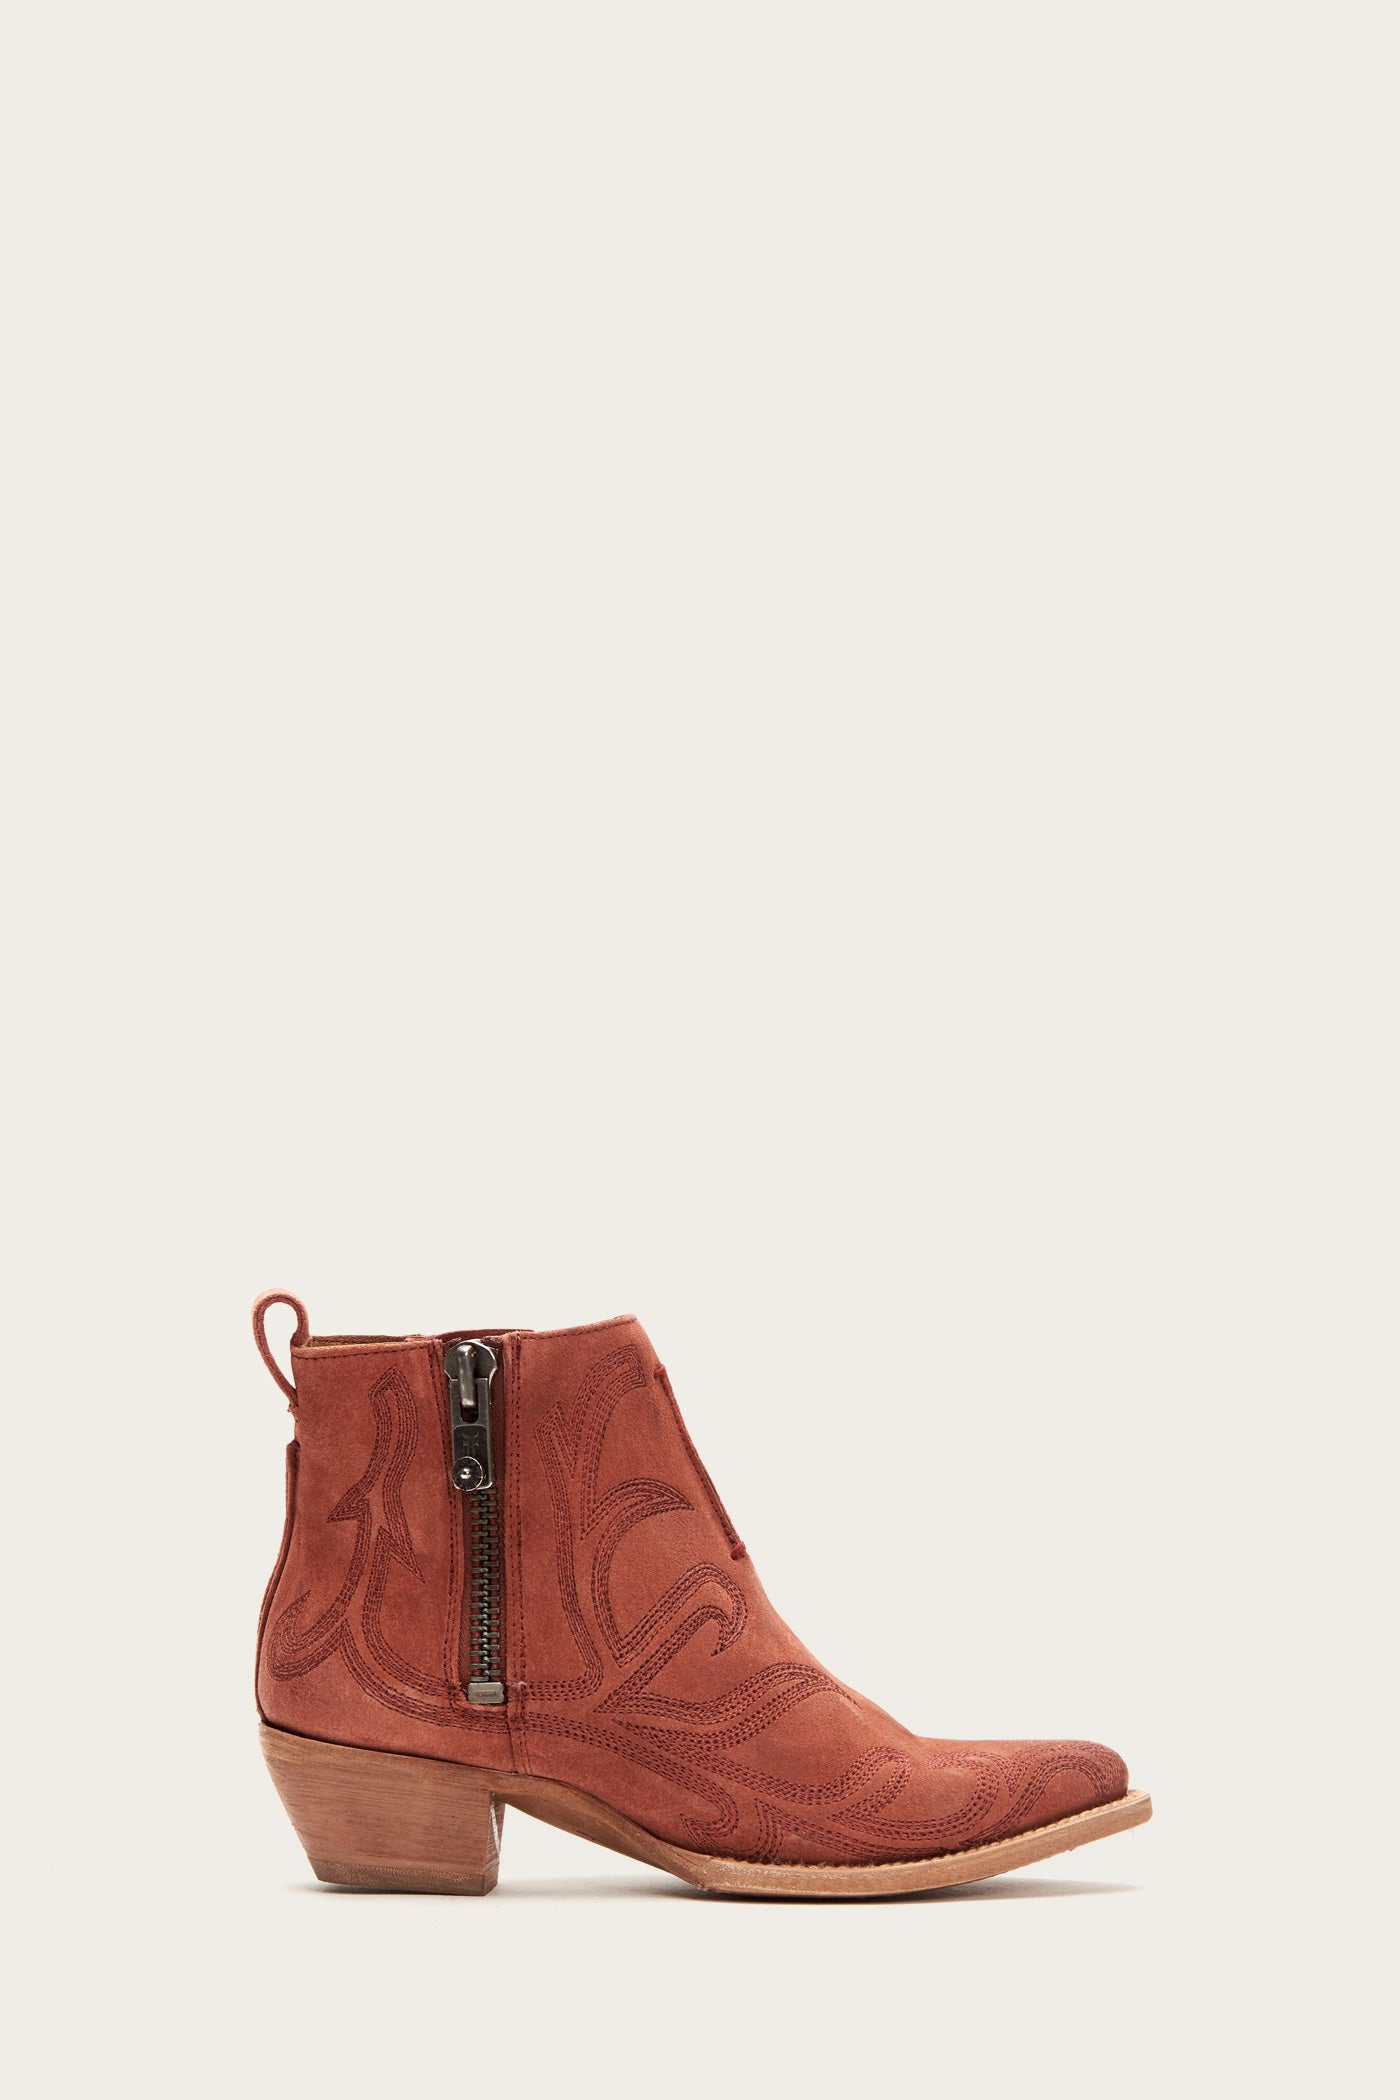 e28b710f514 Leather Boots, Shoes & Bags | Clothing | FRYE Since 1863